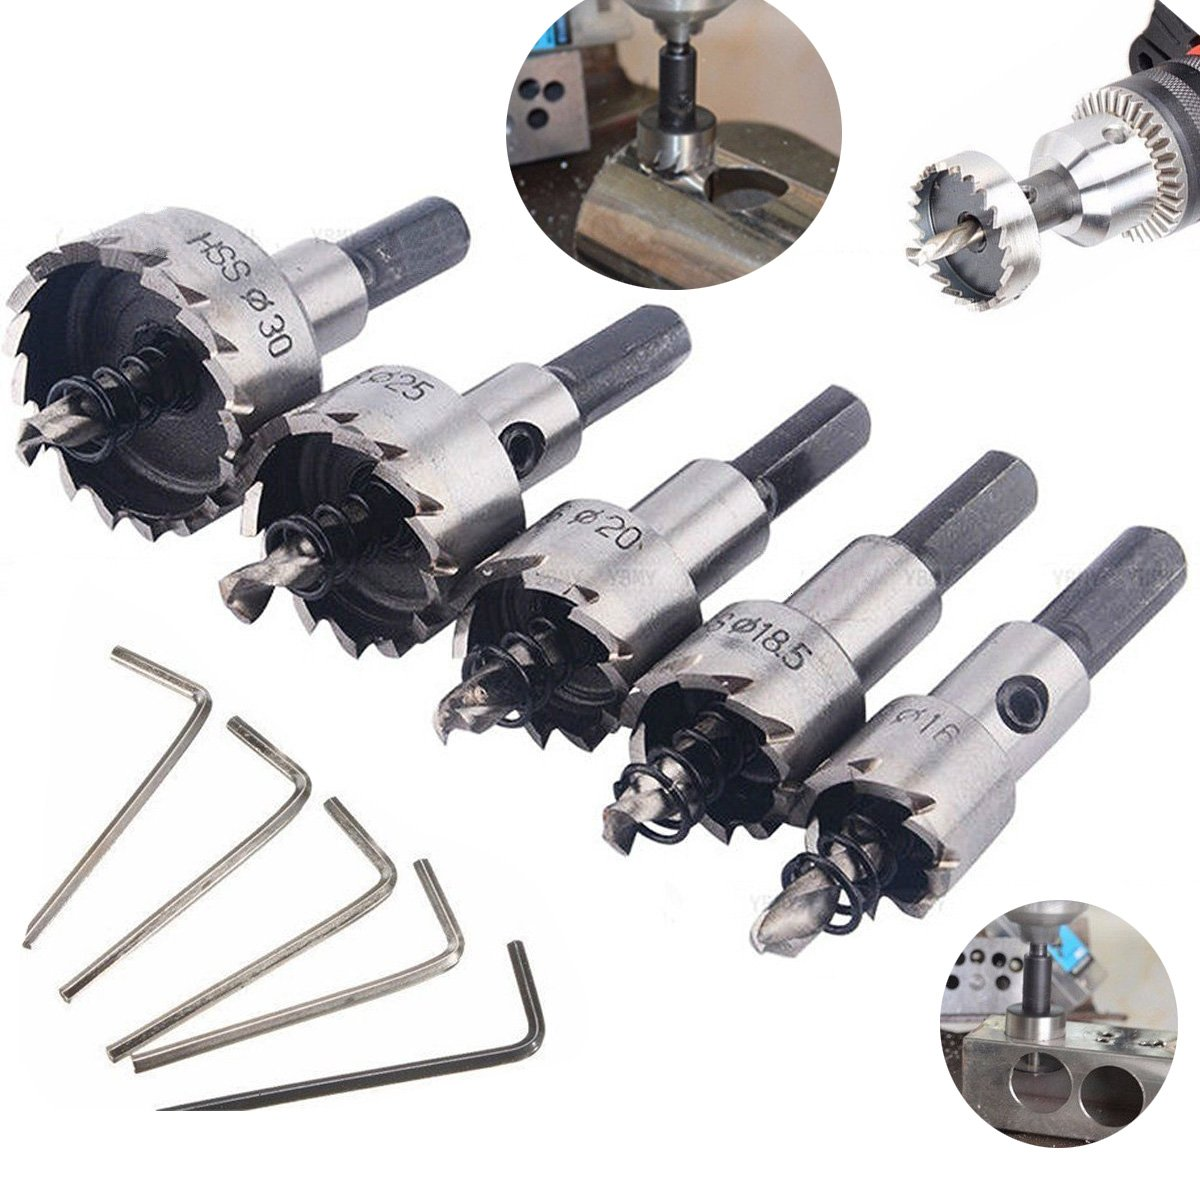 5pcs HSS Drill Bit Hole Saw Tooth Set Wood Alloy Cutter 16-30mm With Wrench UK